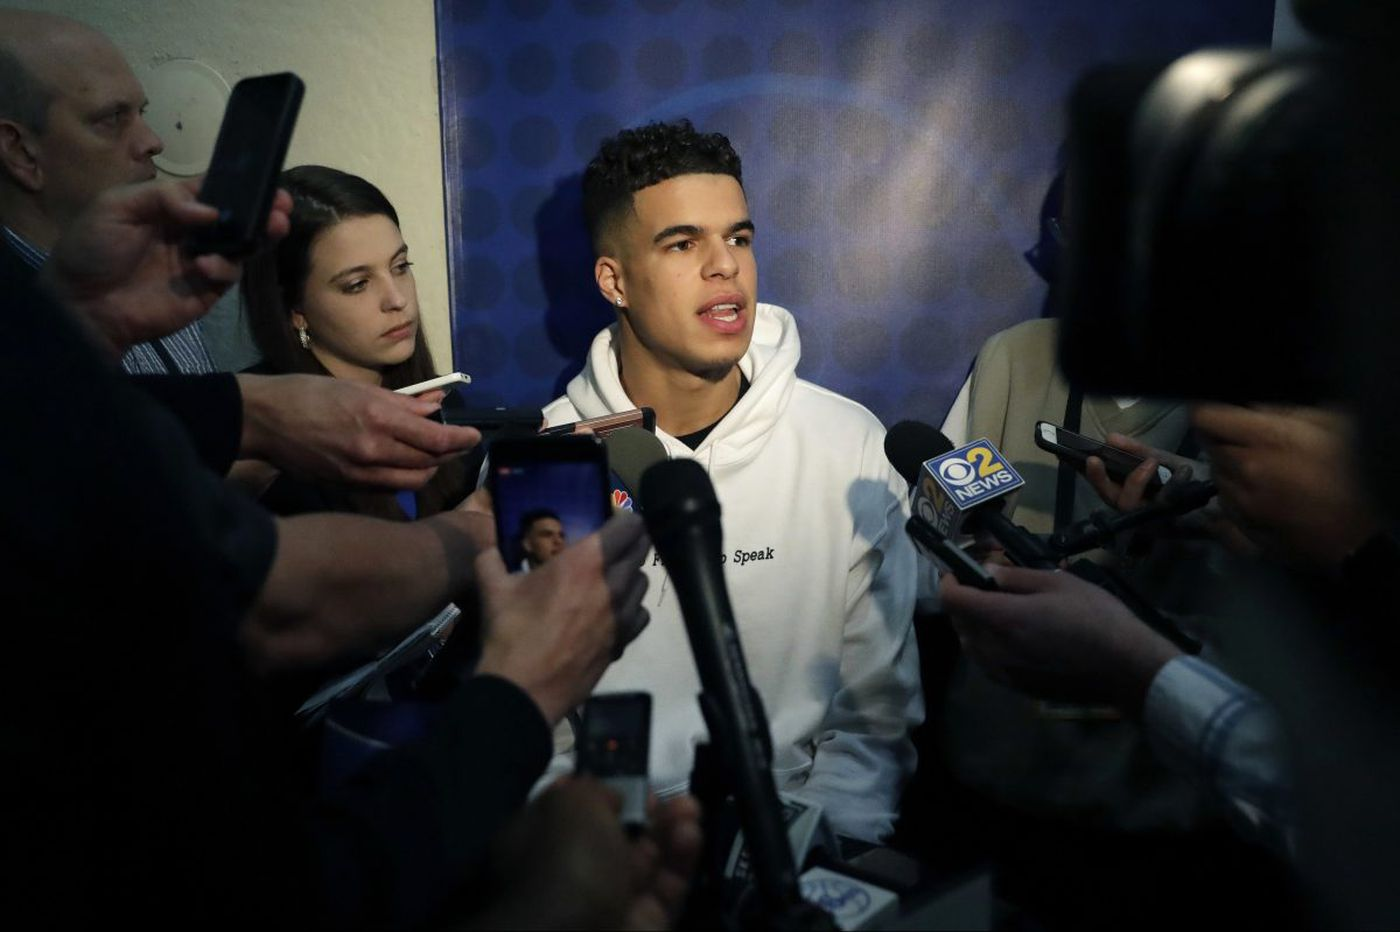 Is Michael Porter Jr. worth the Sixers' moving up to draft?